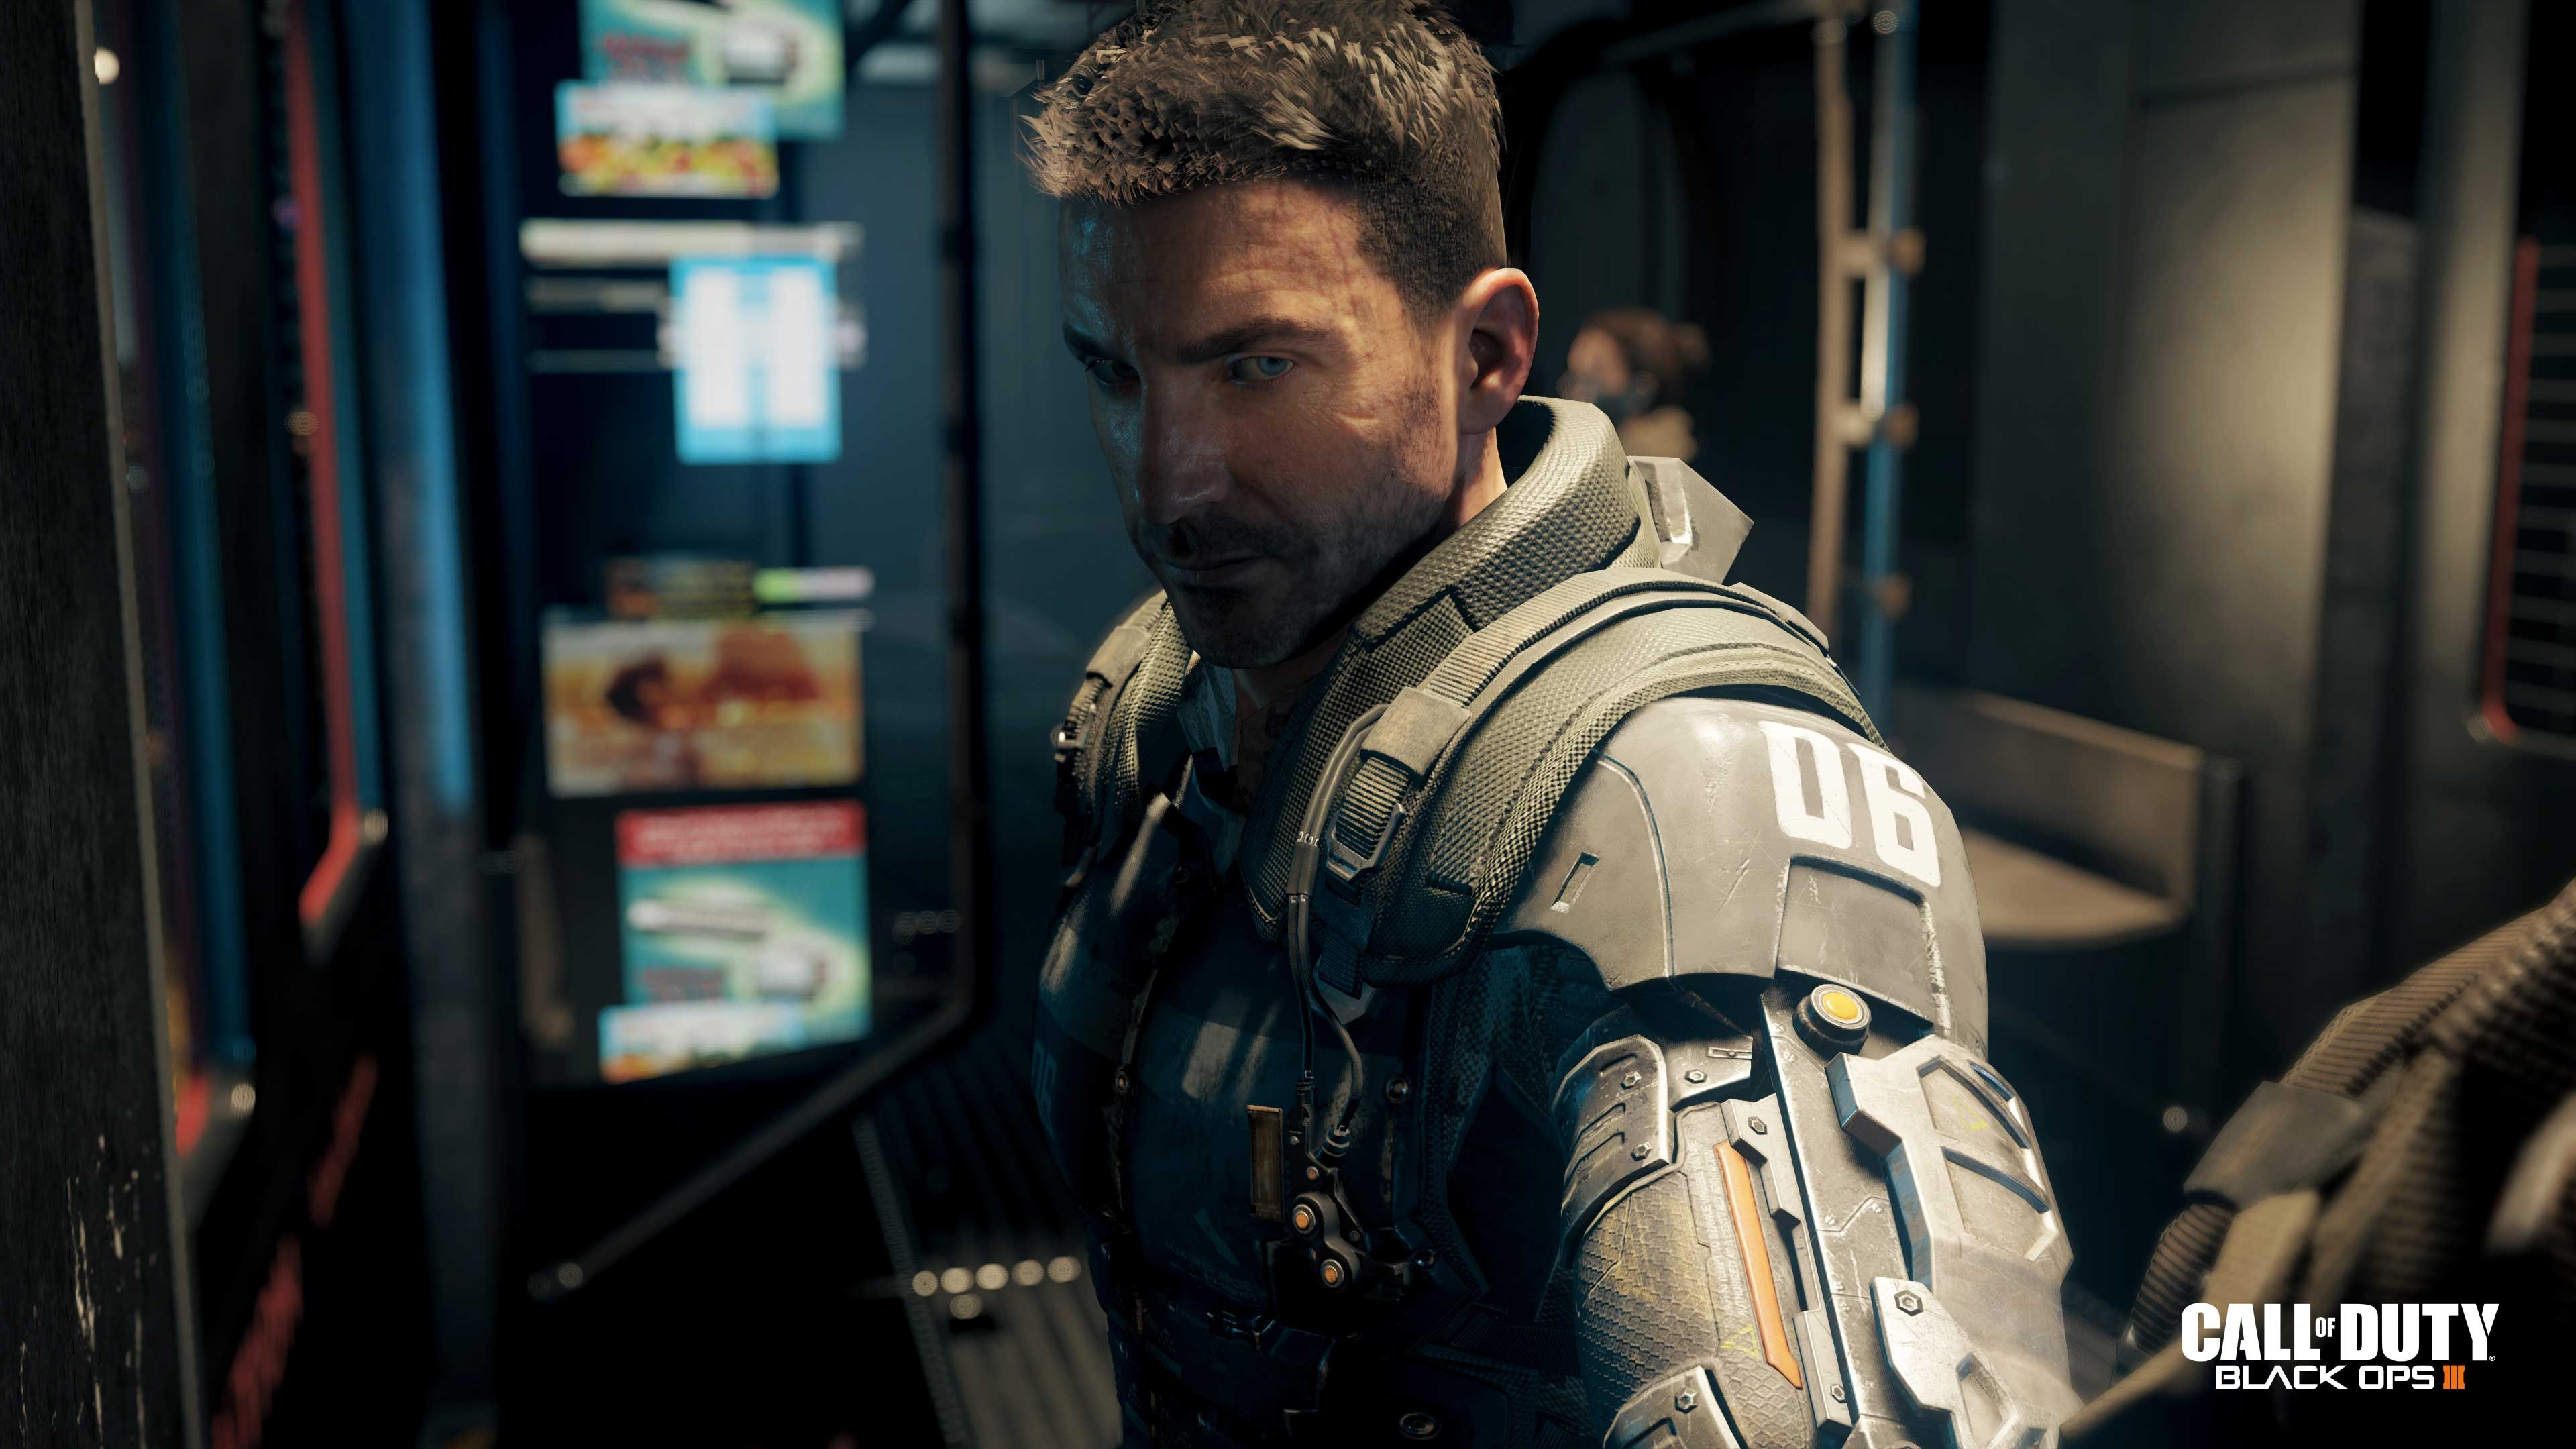 Call of Duty Black Ops 31